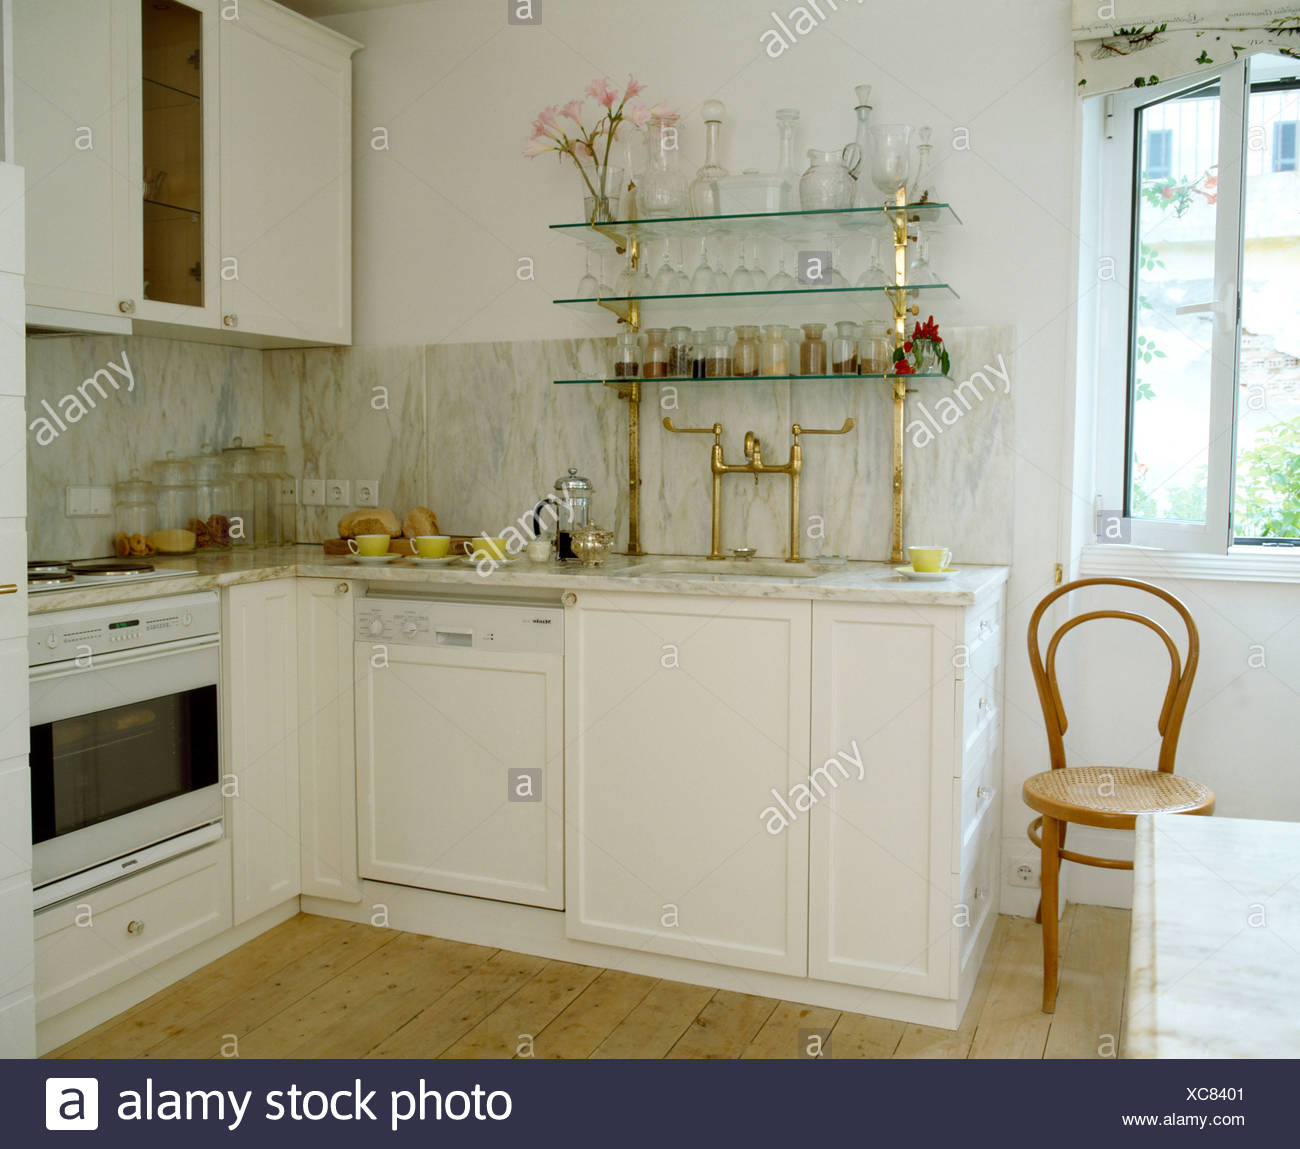 Glassware on glass shelves in white coastal kitchen with ...